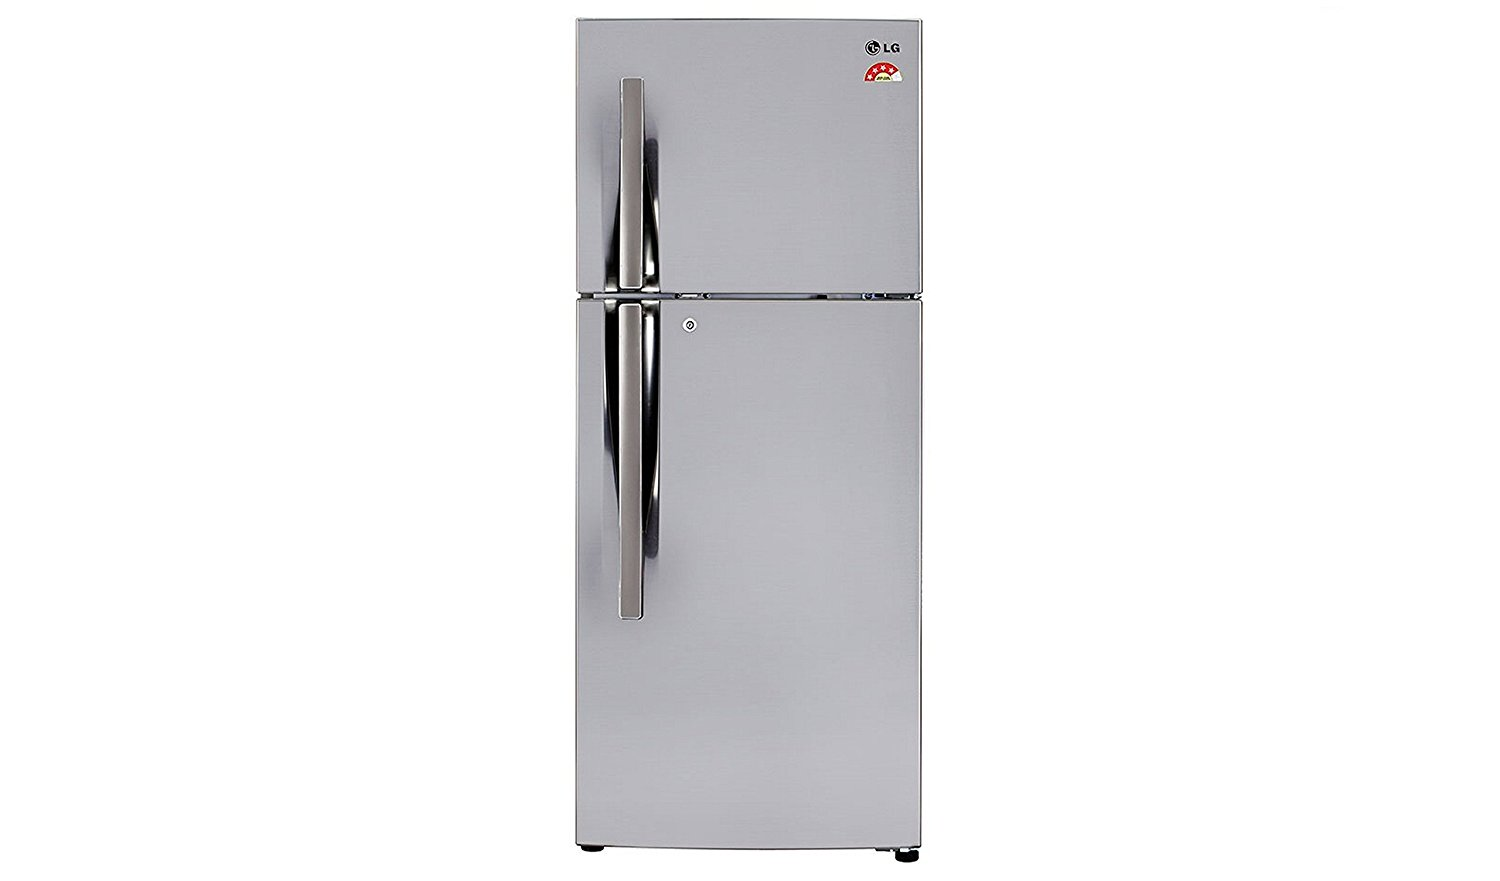 LG GL I292RPZL 260 Litres Double Door Frost Free Refrigerator  Silver